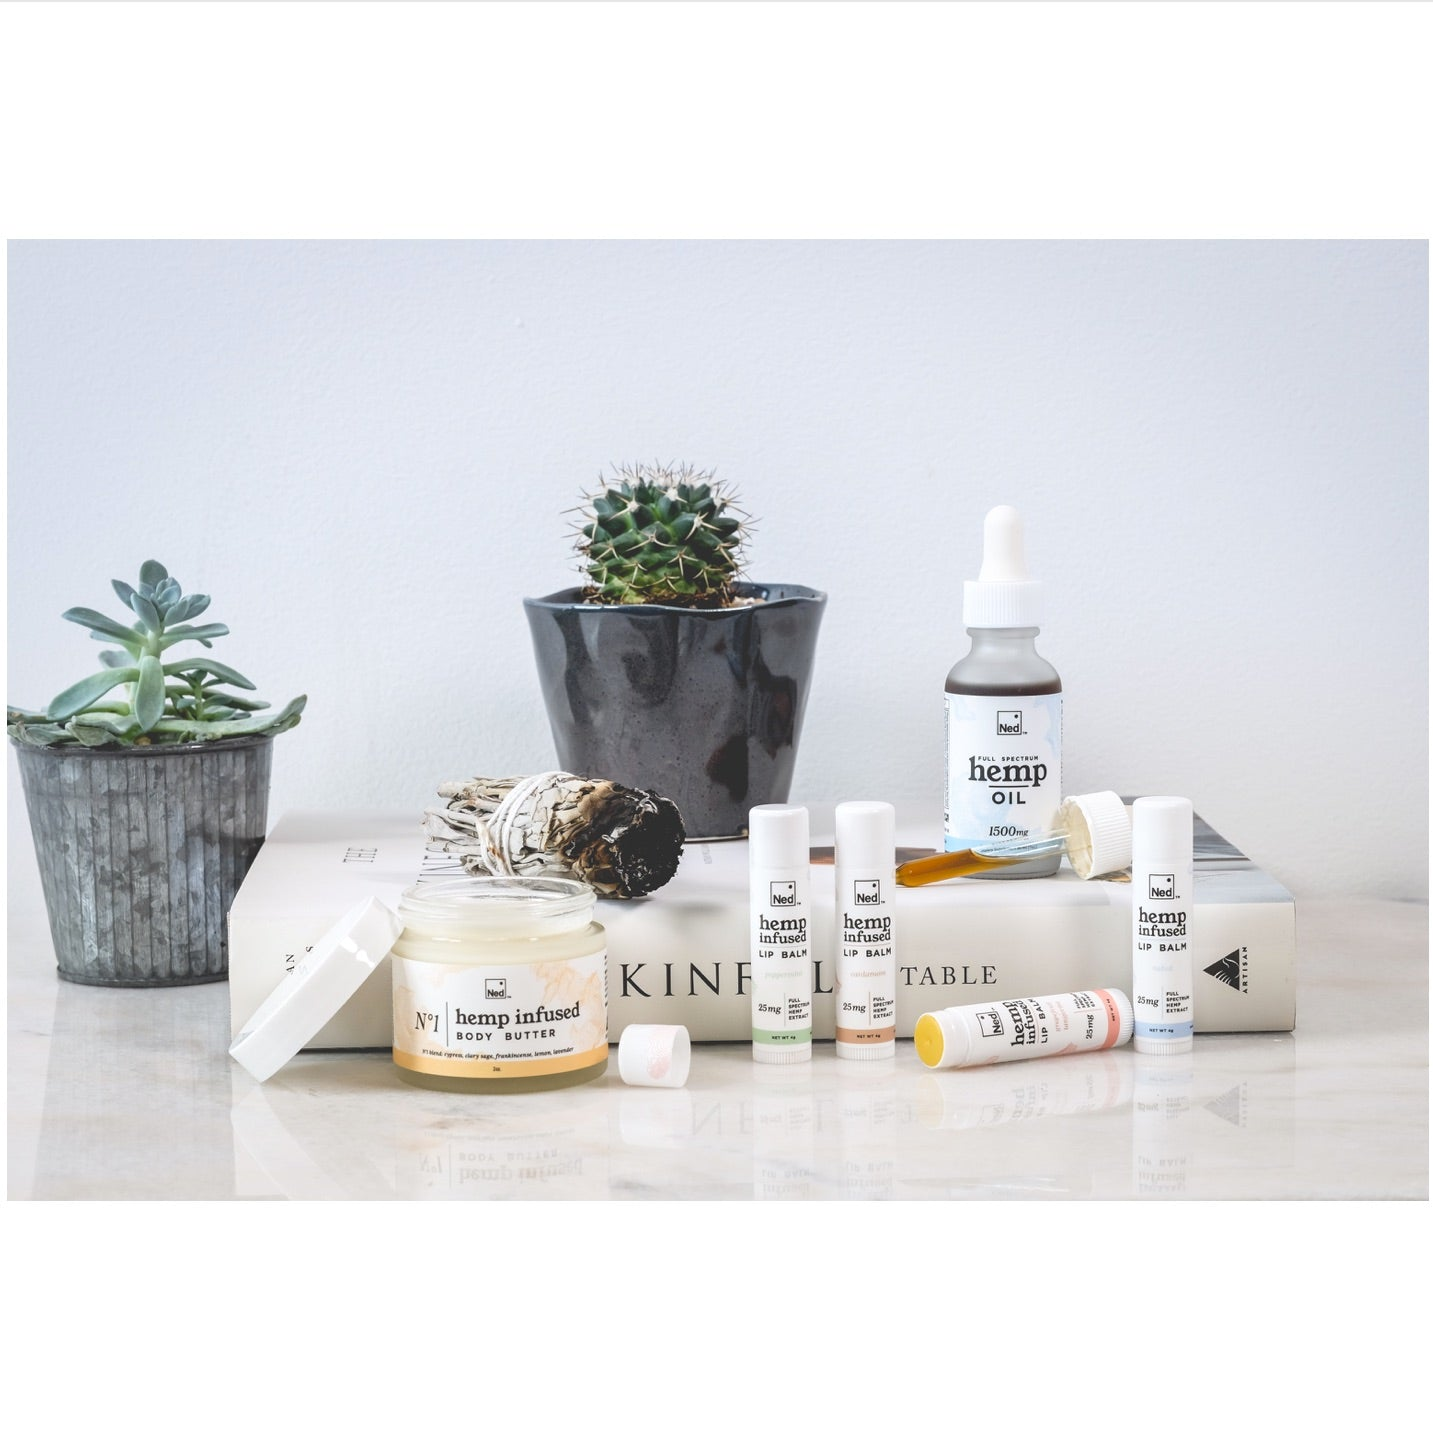 Ned | Wellness, simplified  The world's best natural remedies